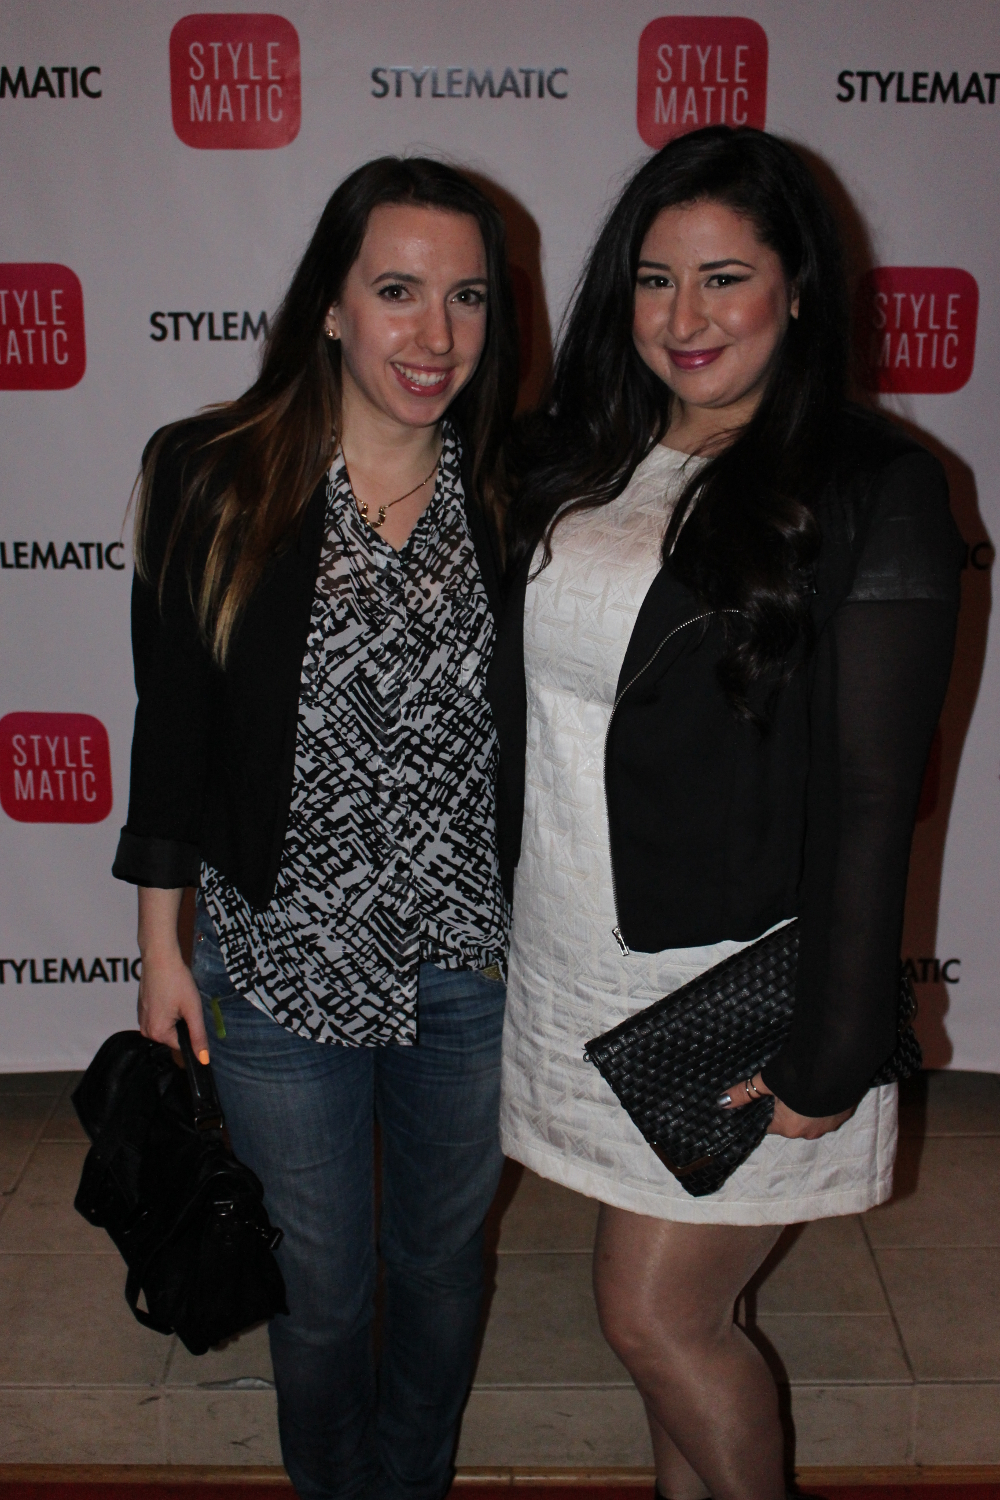 Stylematic App Launch